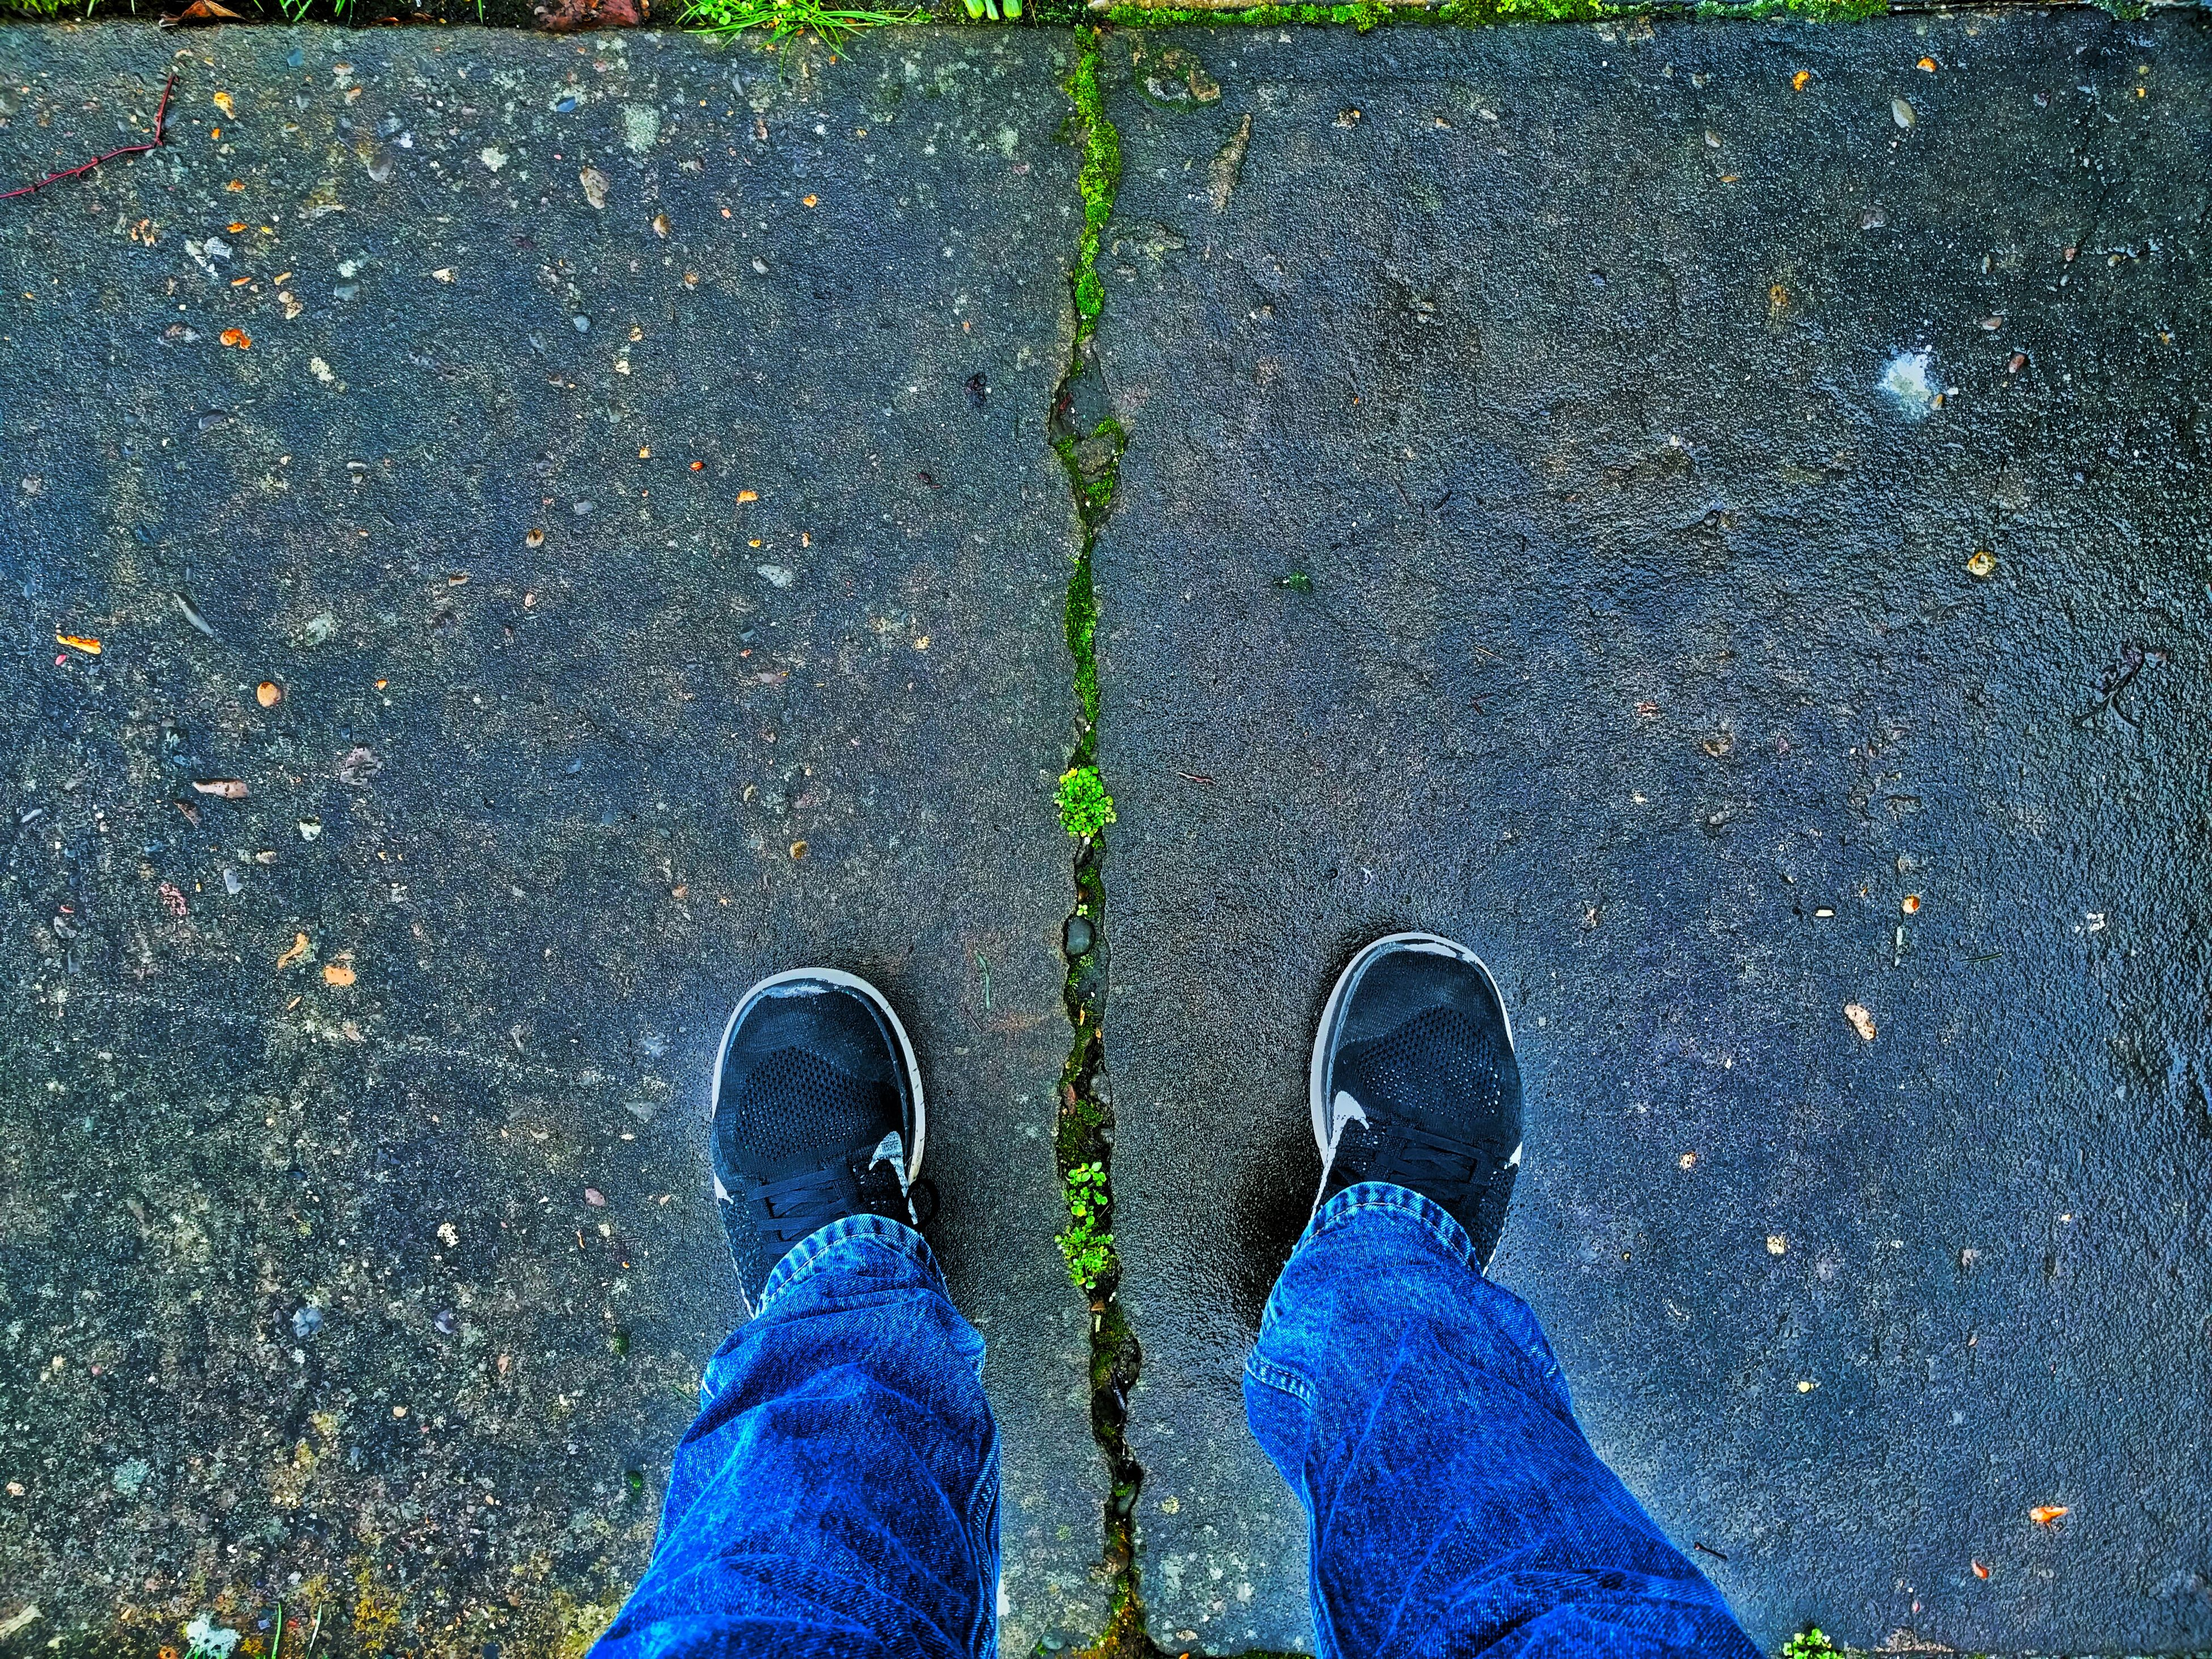 low section, person, shoe, personal perspective, standing, street, lifestyles, high angle view, road, men, leisure activity, jeans, asphalt, leaf, blue, unrecognizable person, day